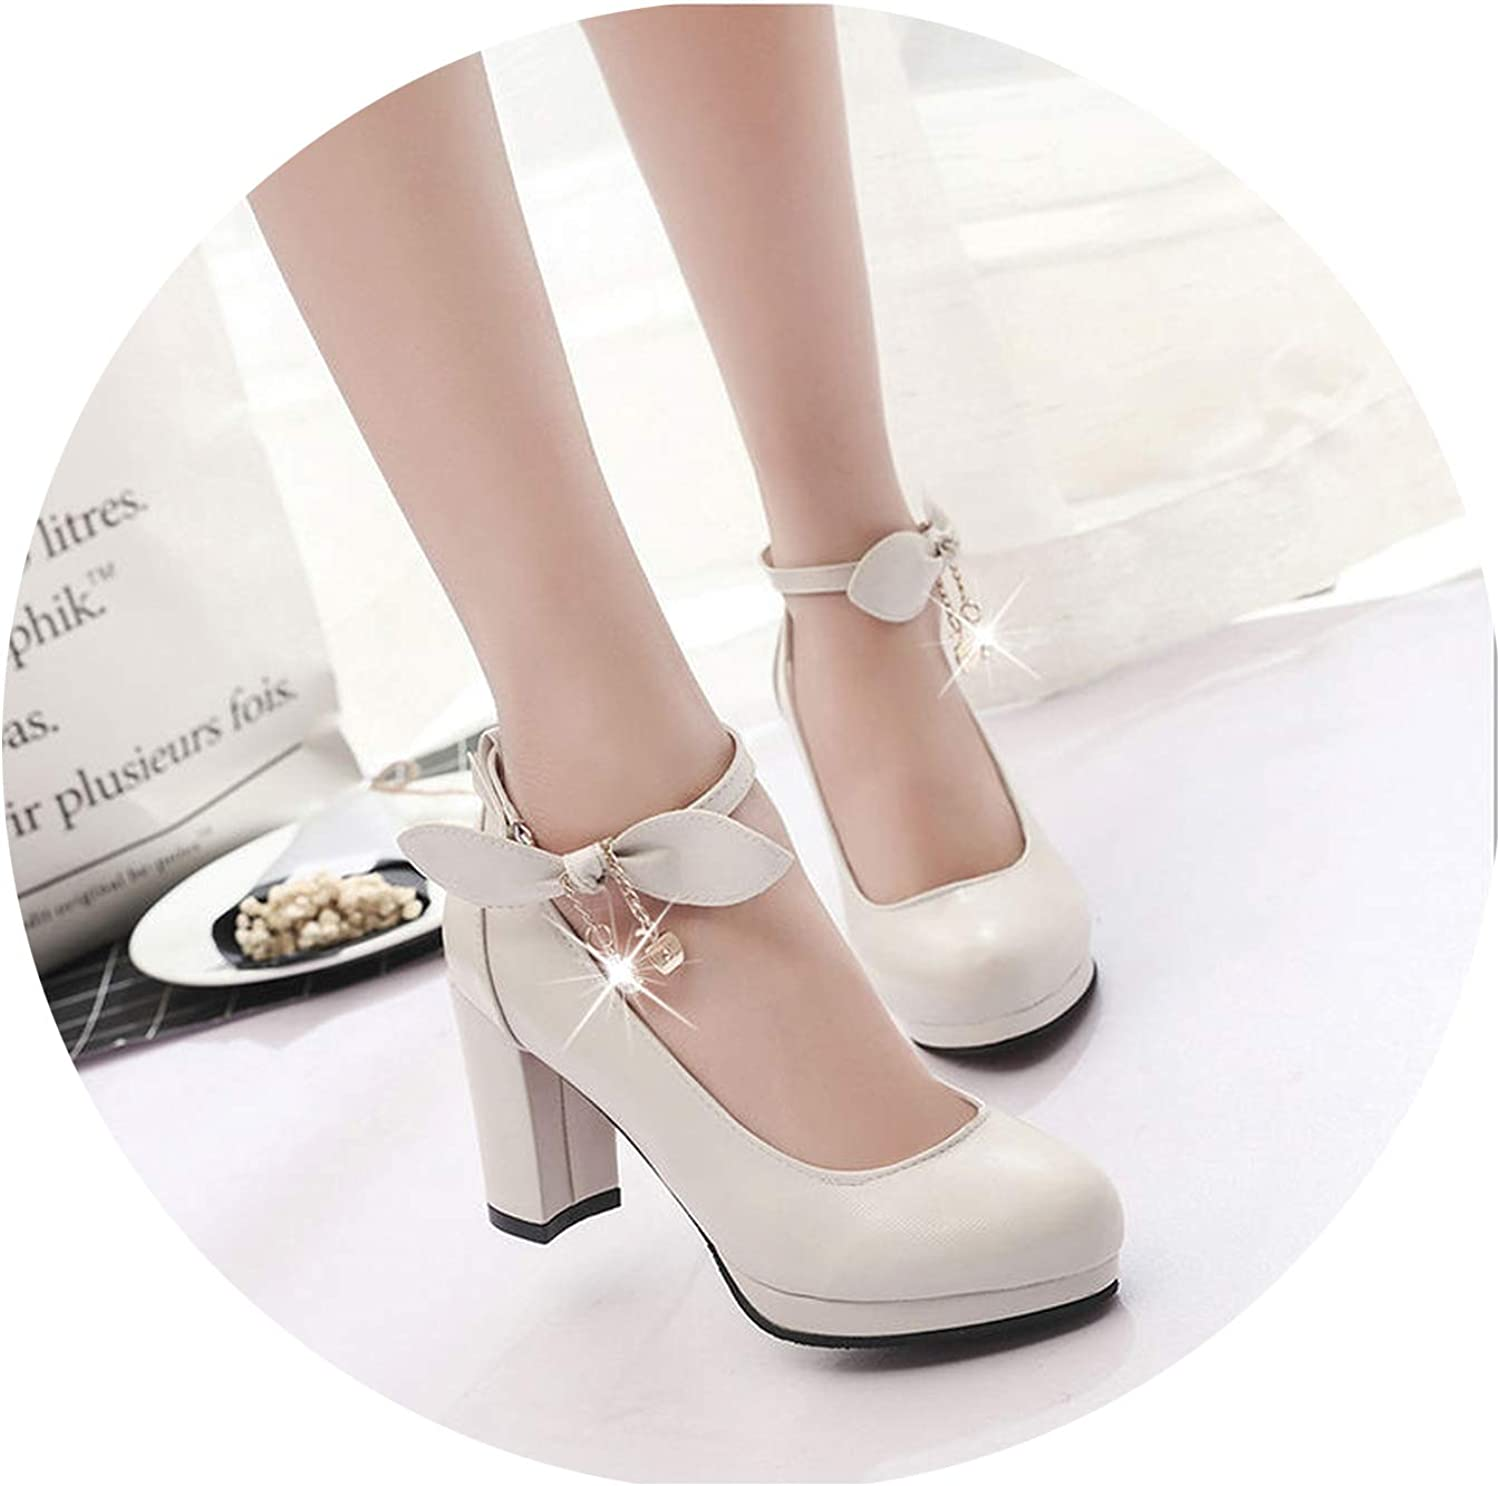 Women shoes Ladies High Heels White Wedding shoes Thick Heel Pumps Lady shoes